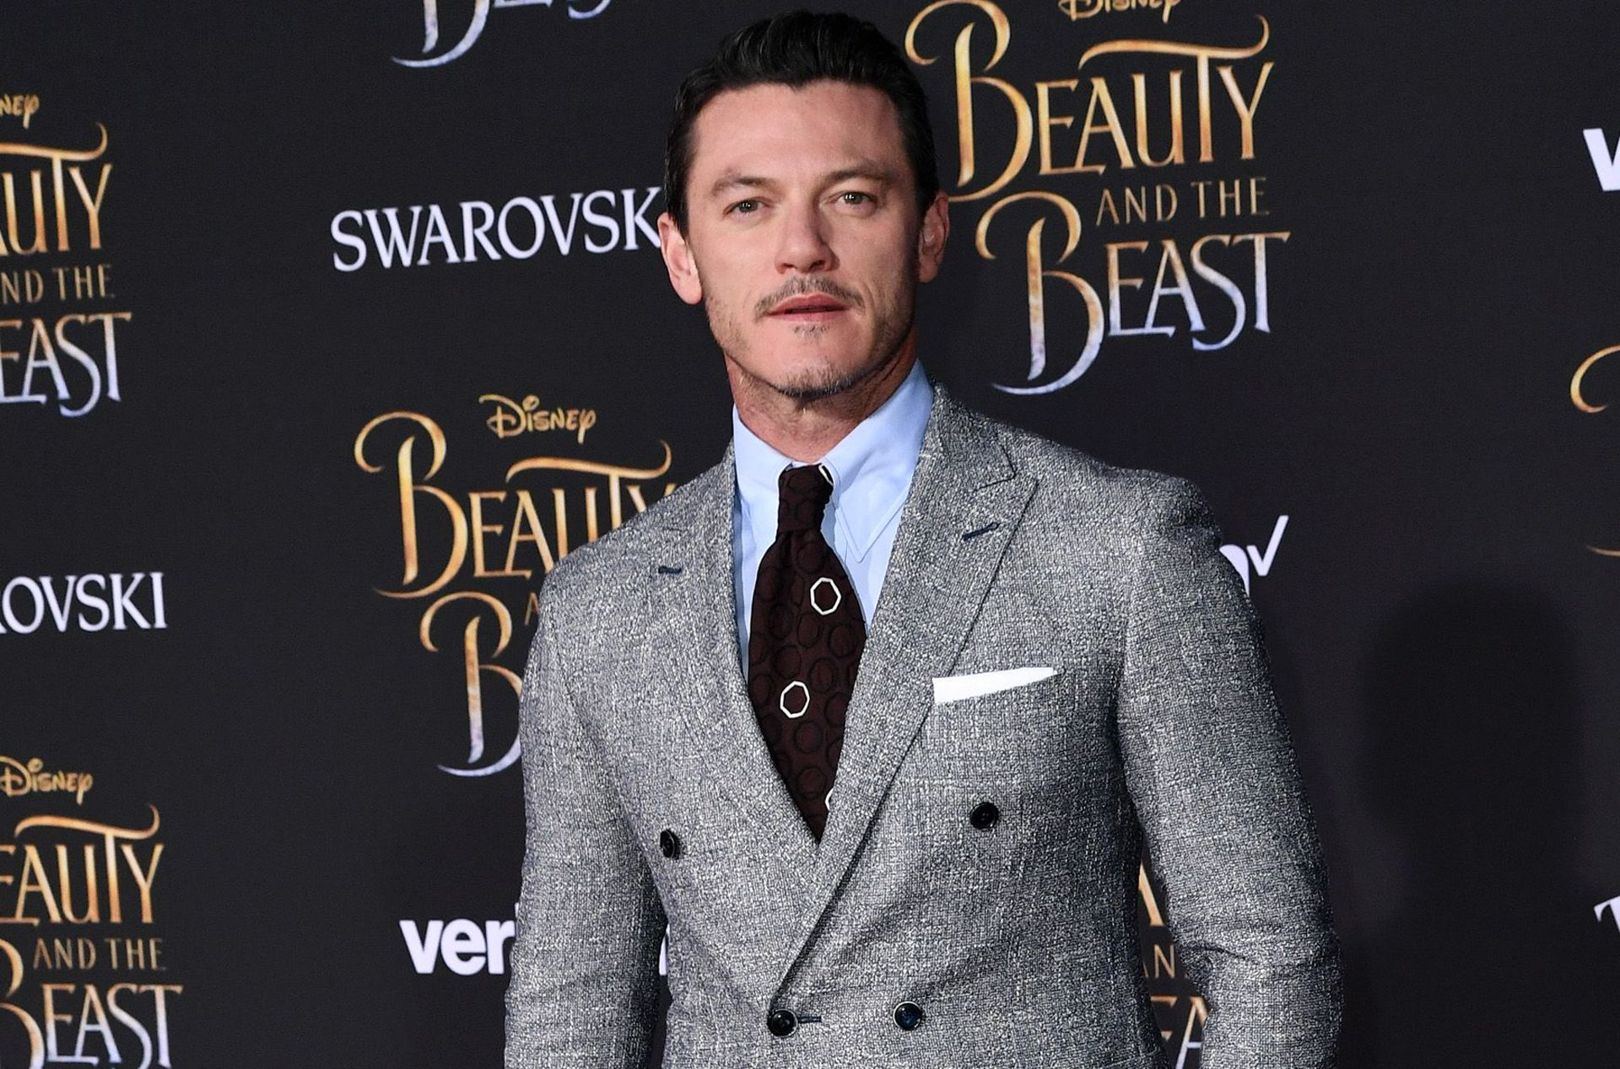 Beauty and the Beast star Luke Evans on his big break and being bullied at  school | British GQ